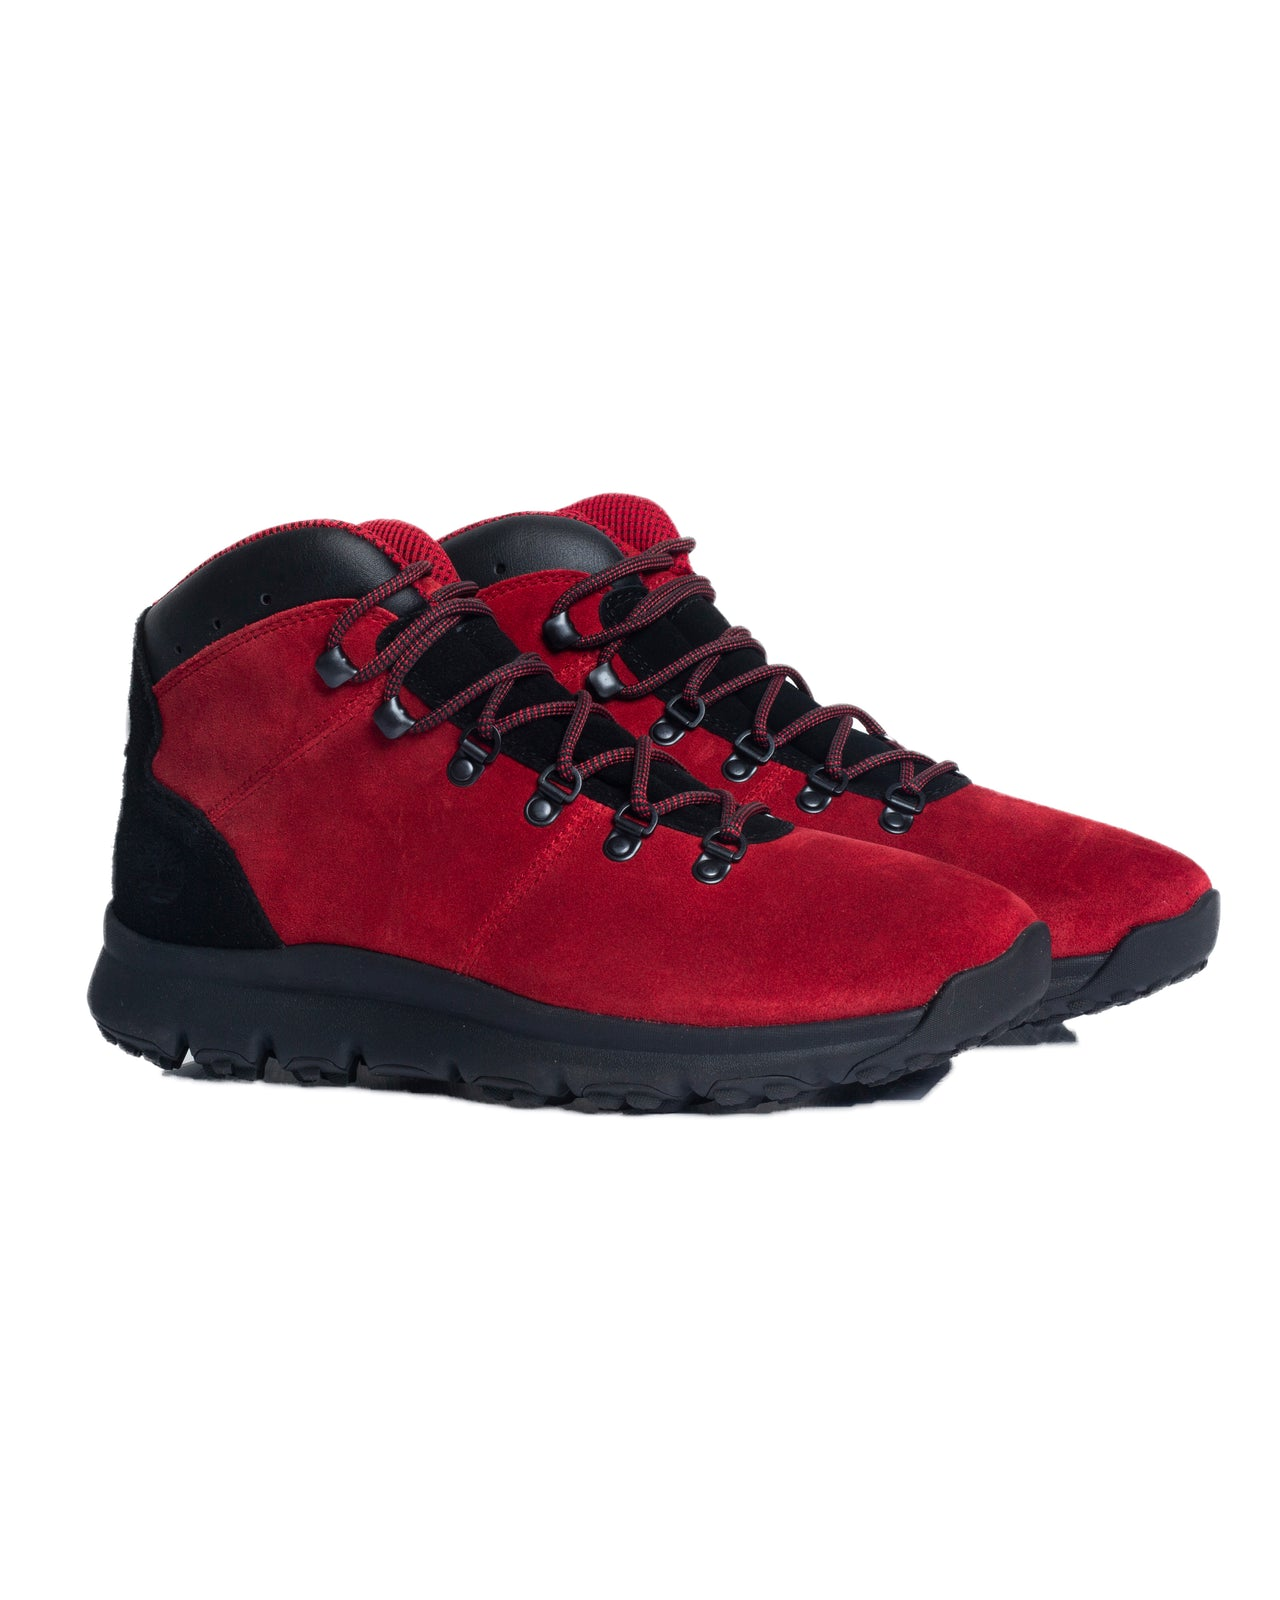 World Hiker Mid - Color: Medium Red Suede | Red